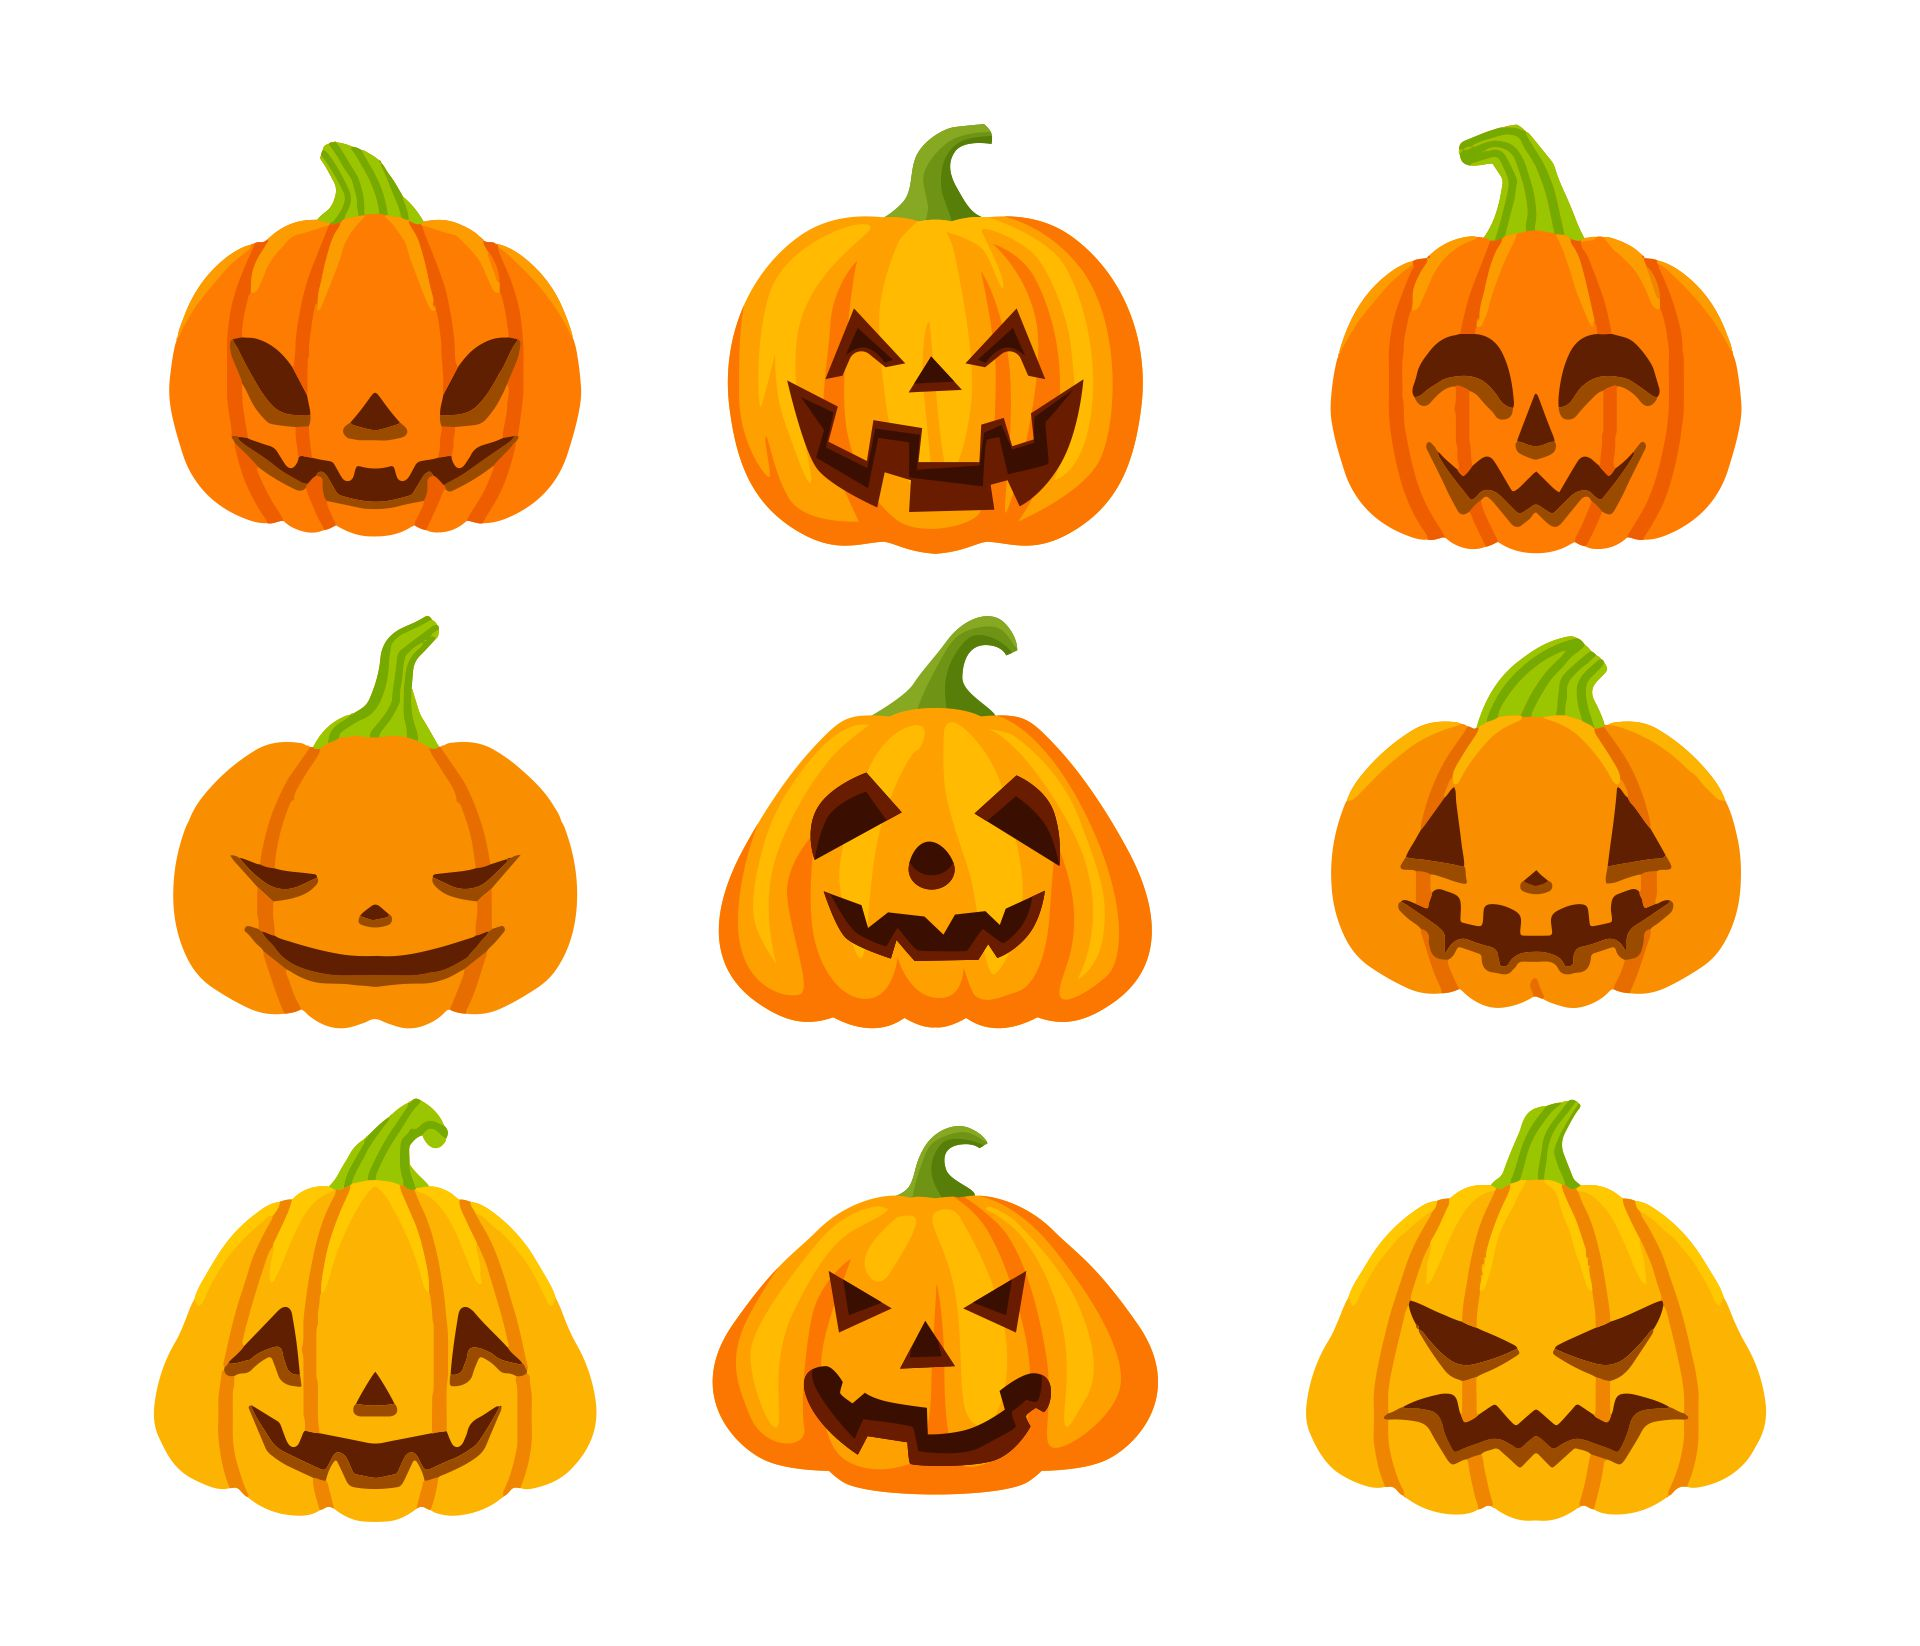 Halloween Pumpkin Set With Cut Out Faces Funny And Spooky